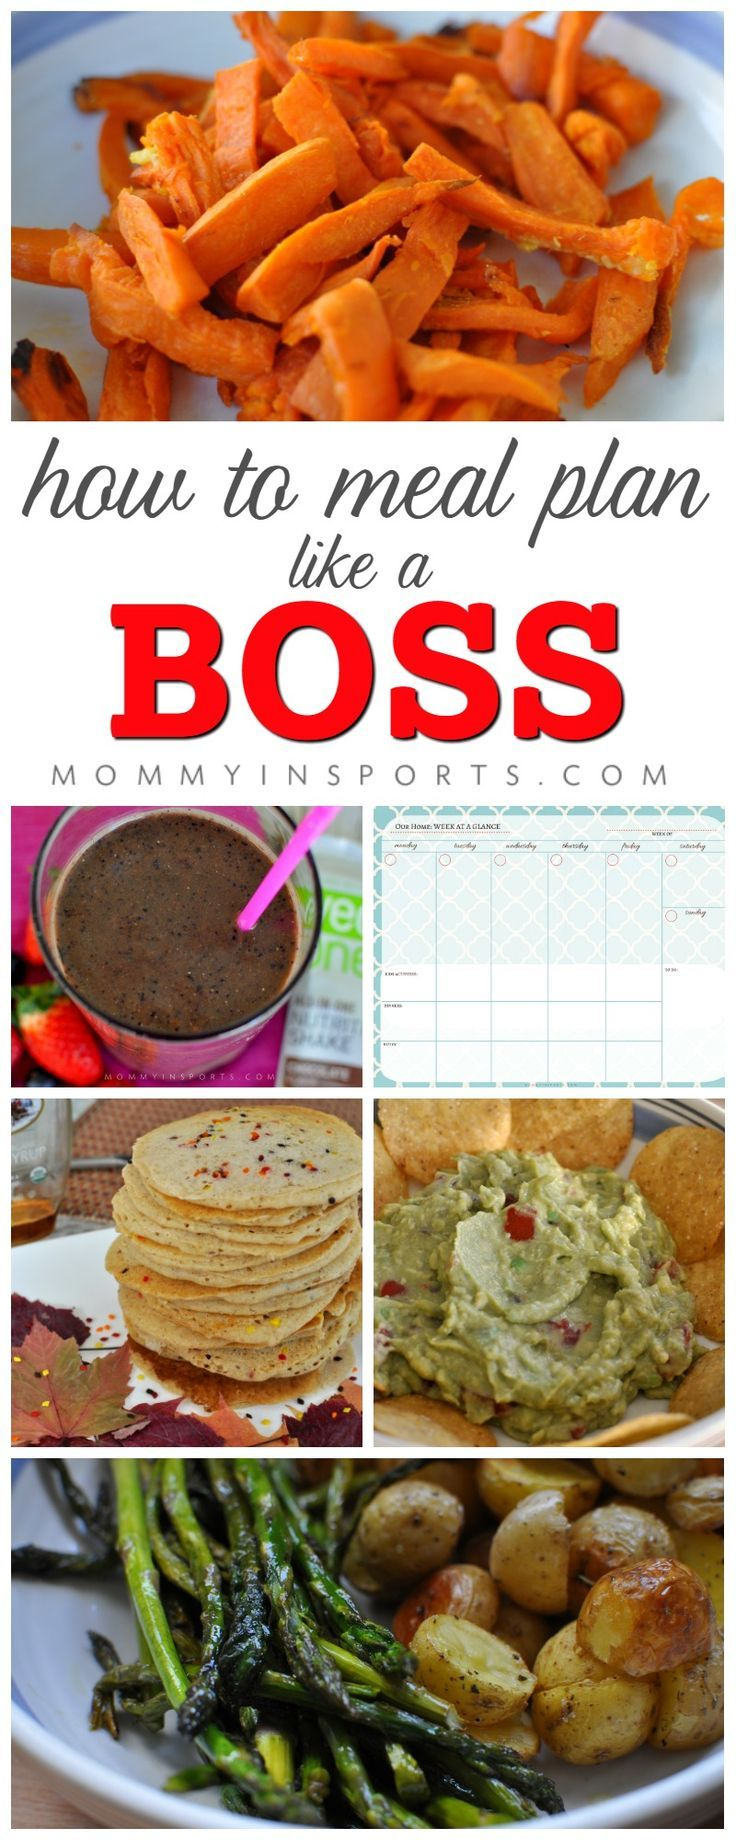 Tired of eating out and never having a plan? Want to save money, time, and appease your kid's expectations? Meal planning is the answer! Follow these simple steps to mealtime success every night! Meal Plan like a BOSS!